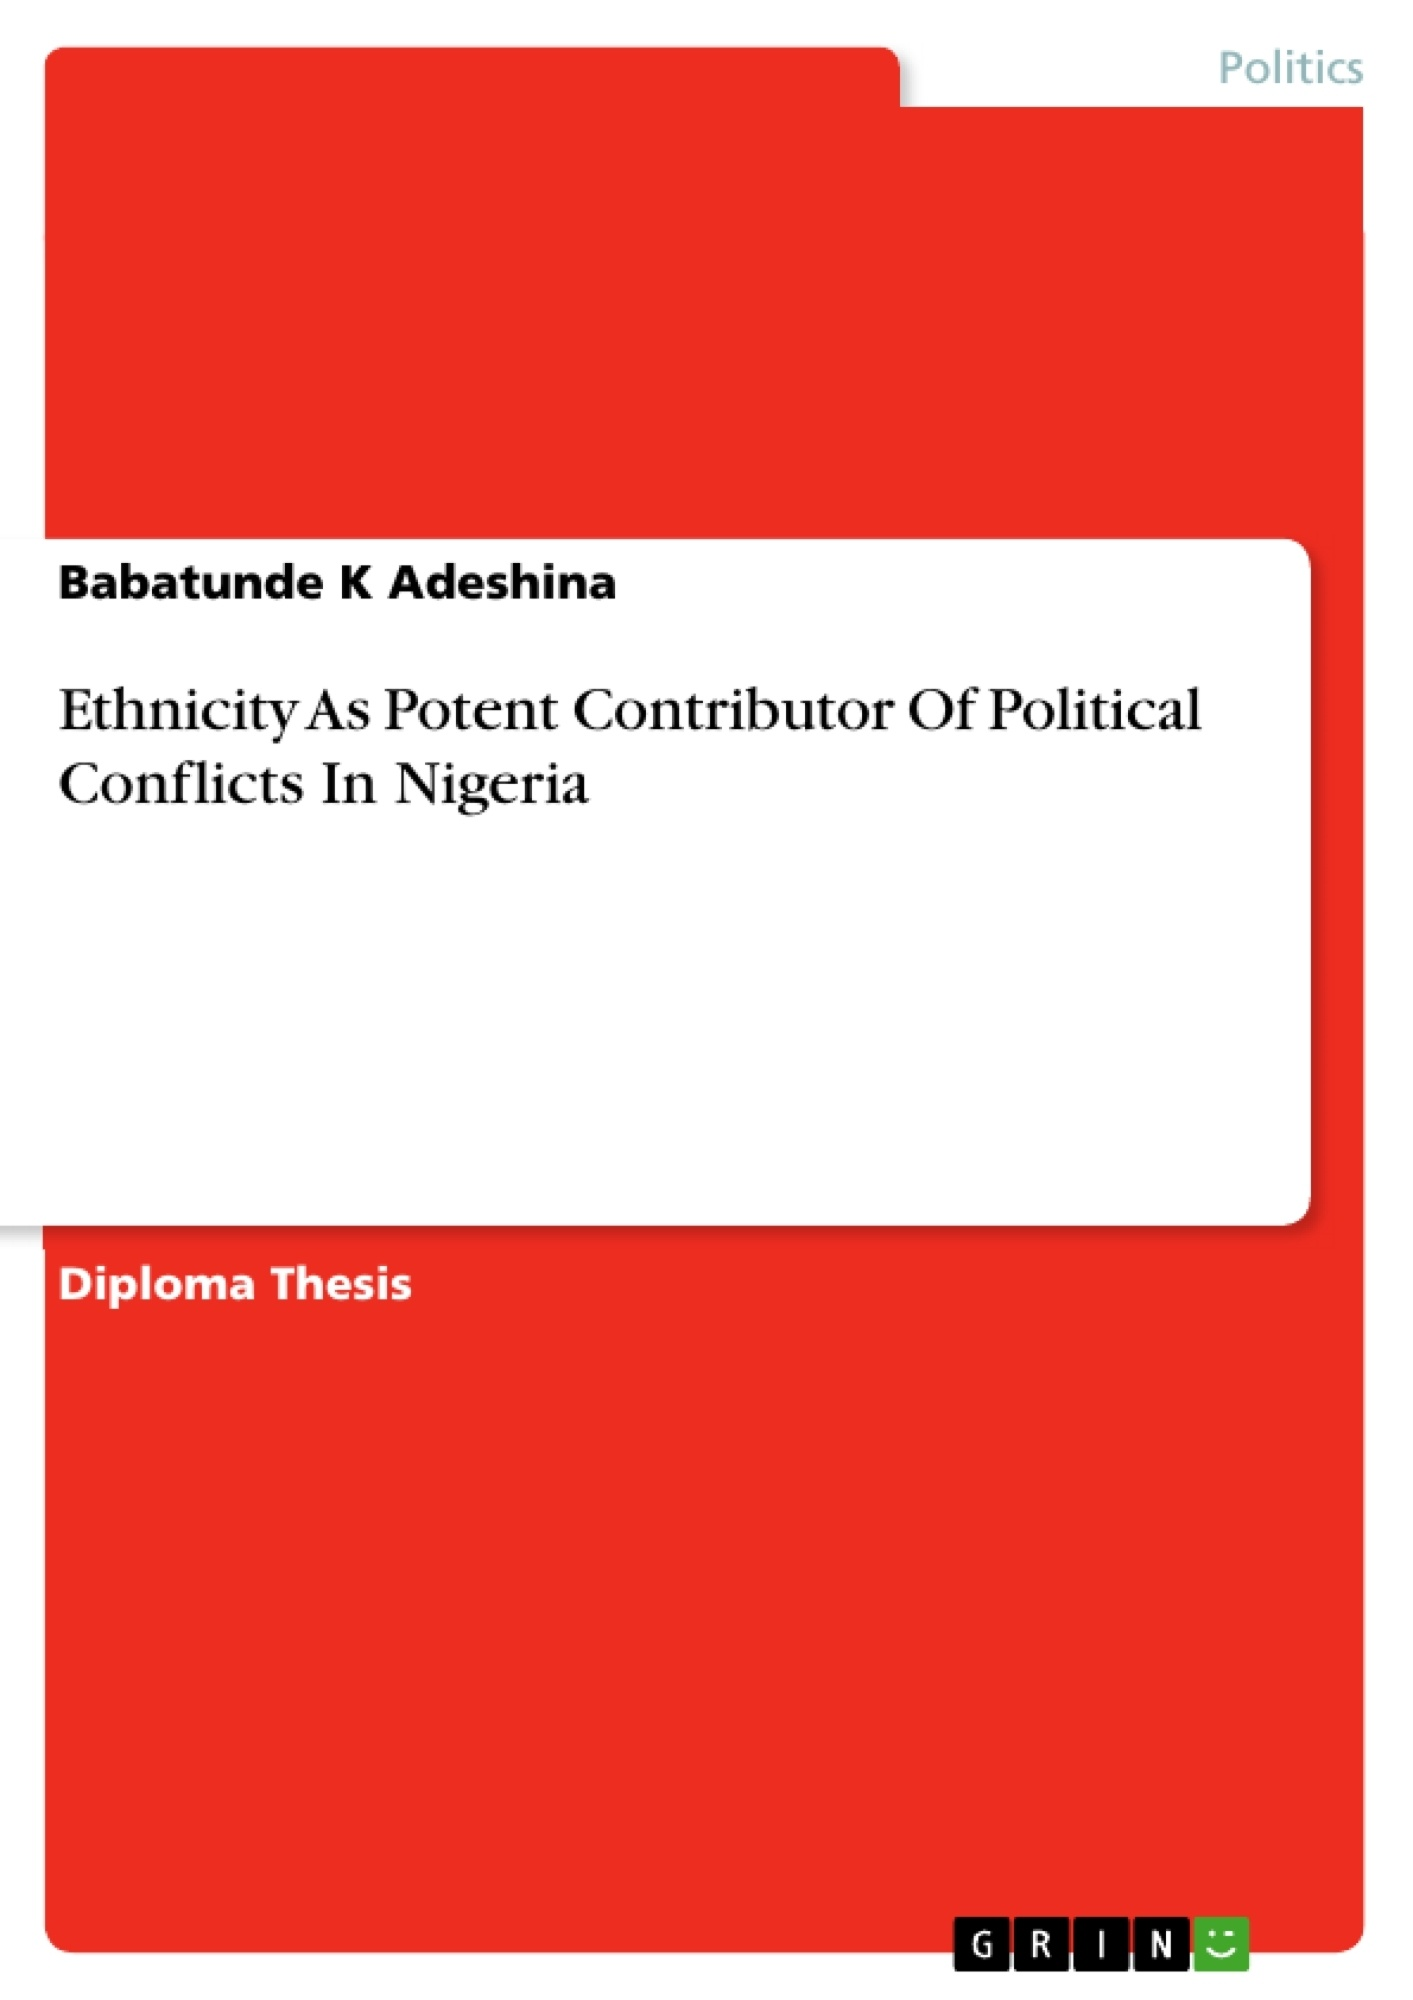 Title: Ethnicity As Potent Contributor Of Political Conflicts In Nigeria